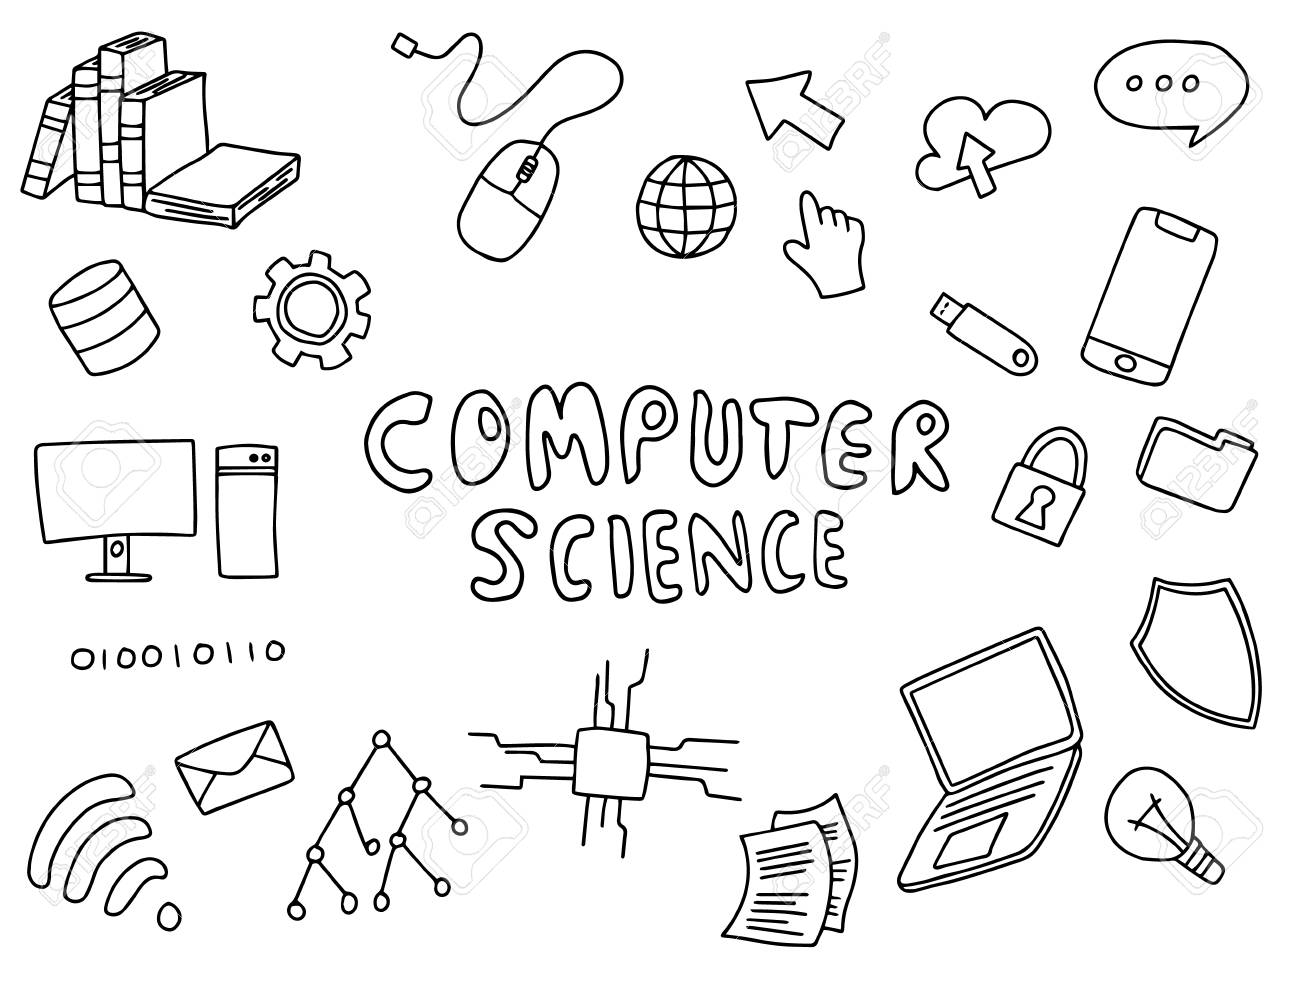 computer science engineering education doodle art with black..